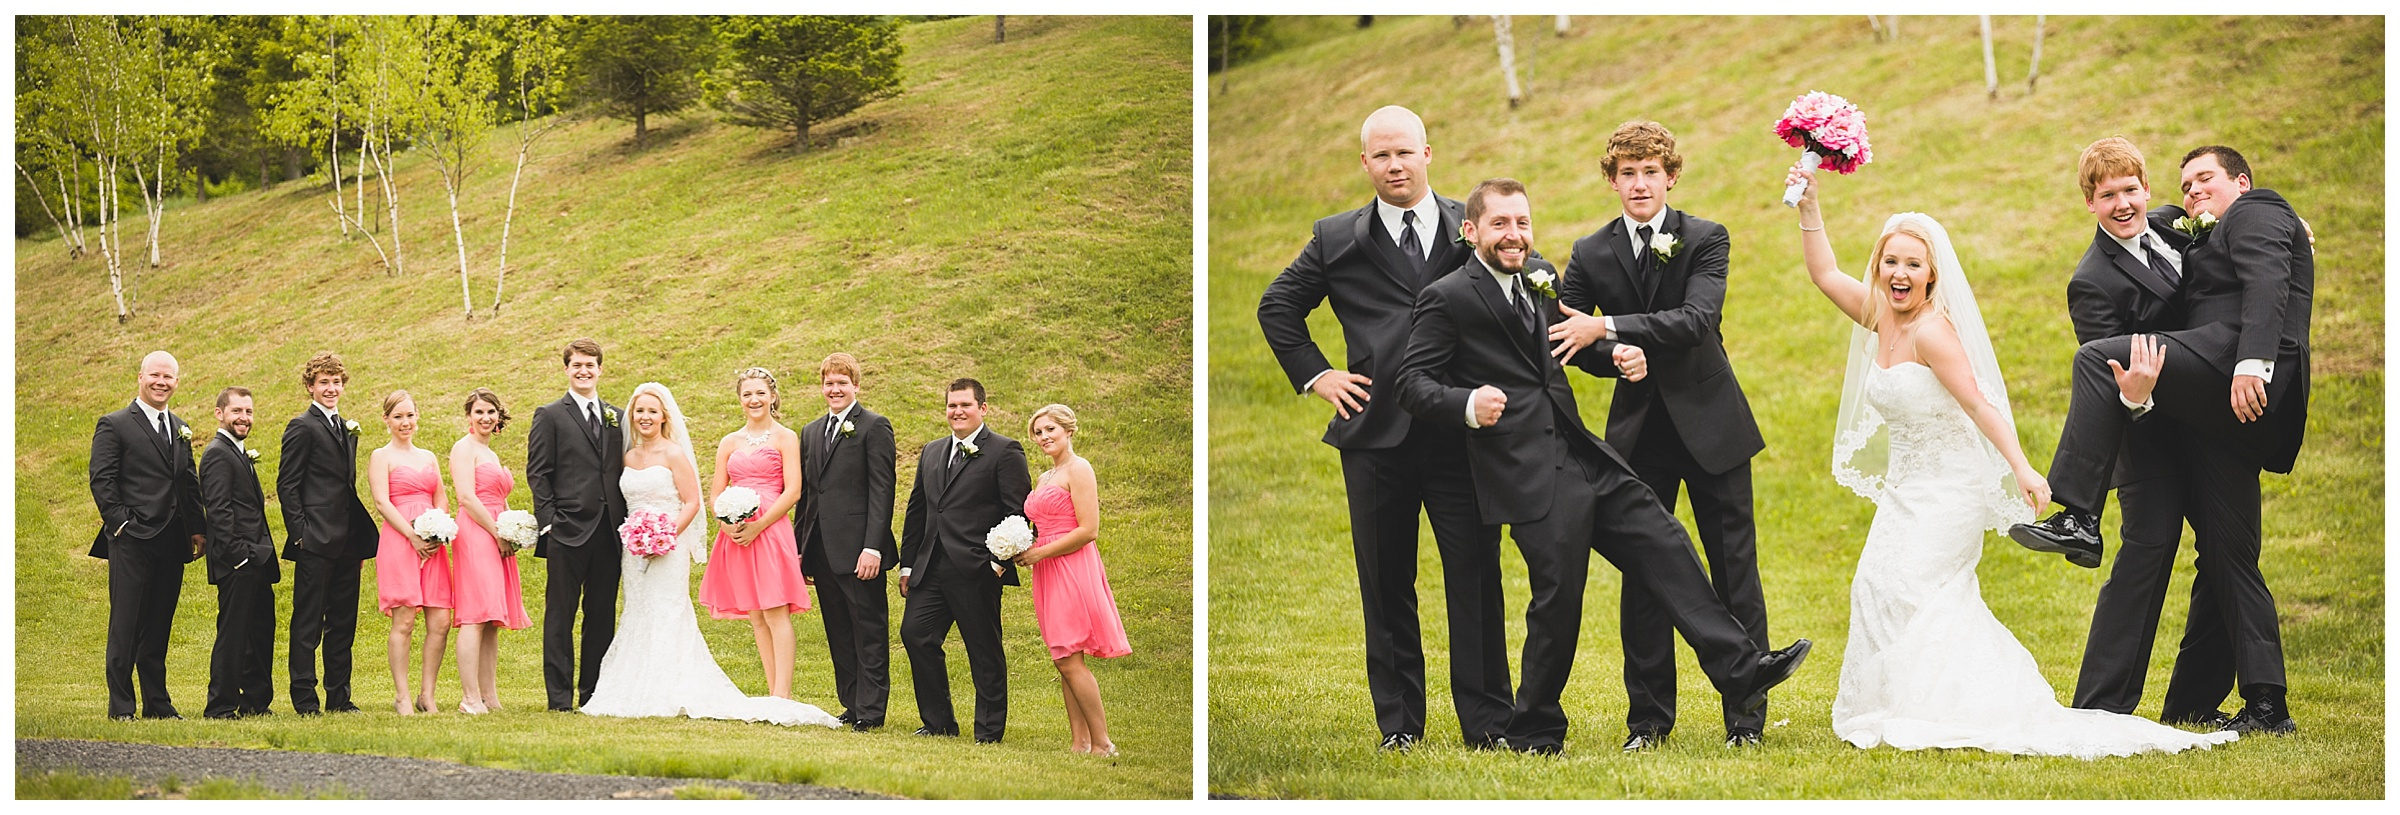 0030_Kelly and Josh's Wedding, Bear Creek Resort, PA_0030